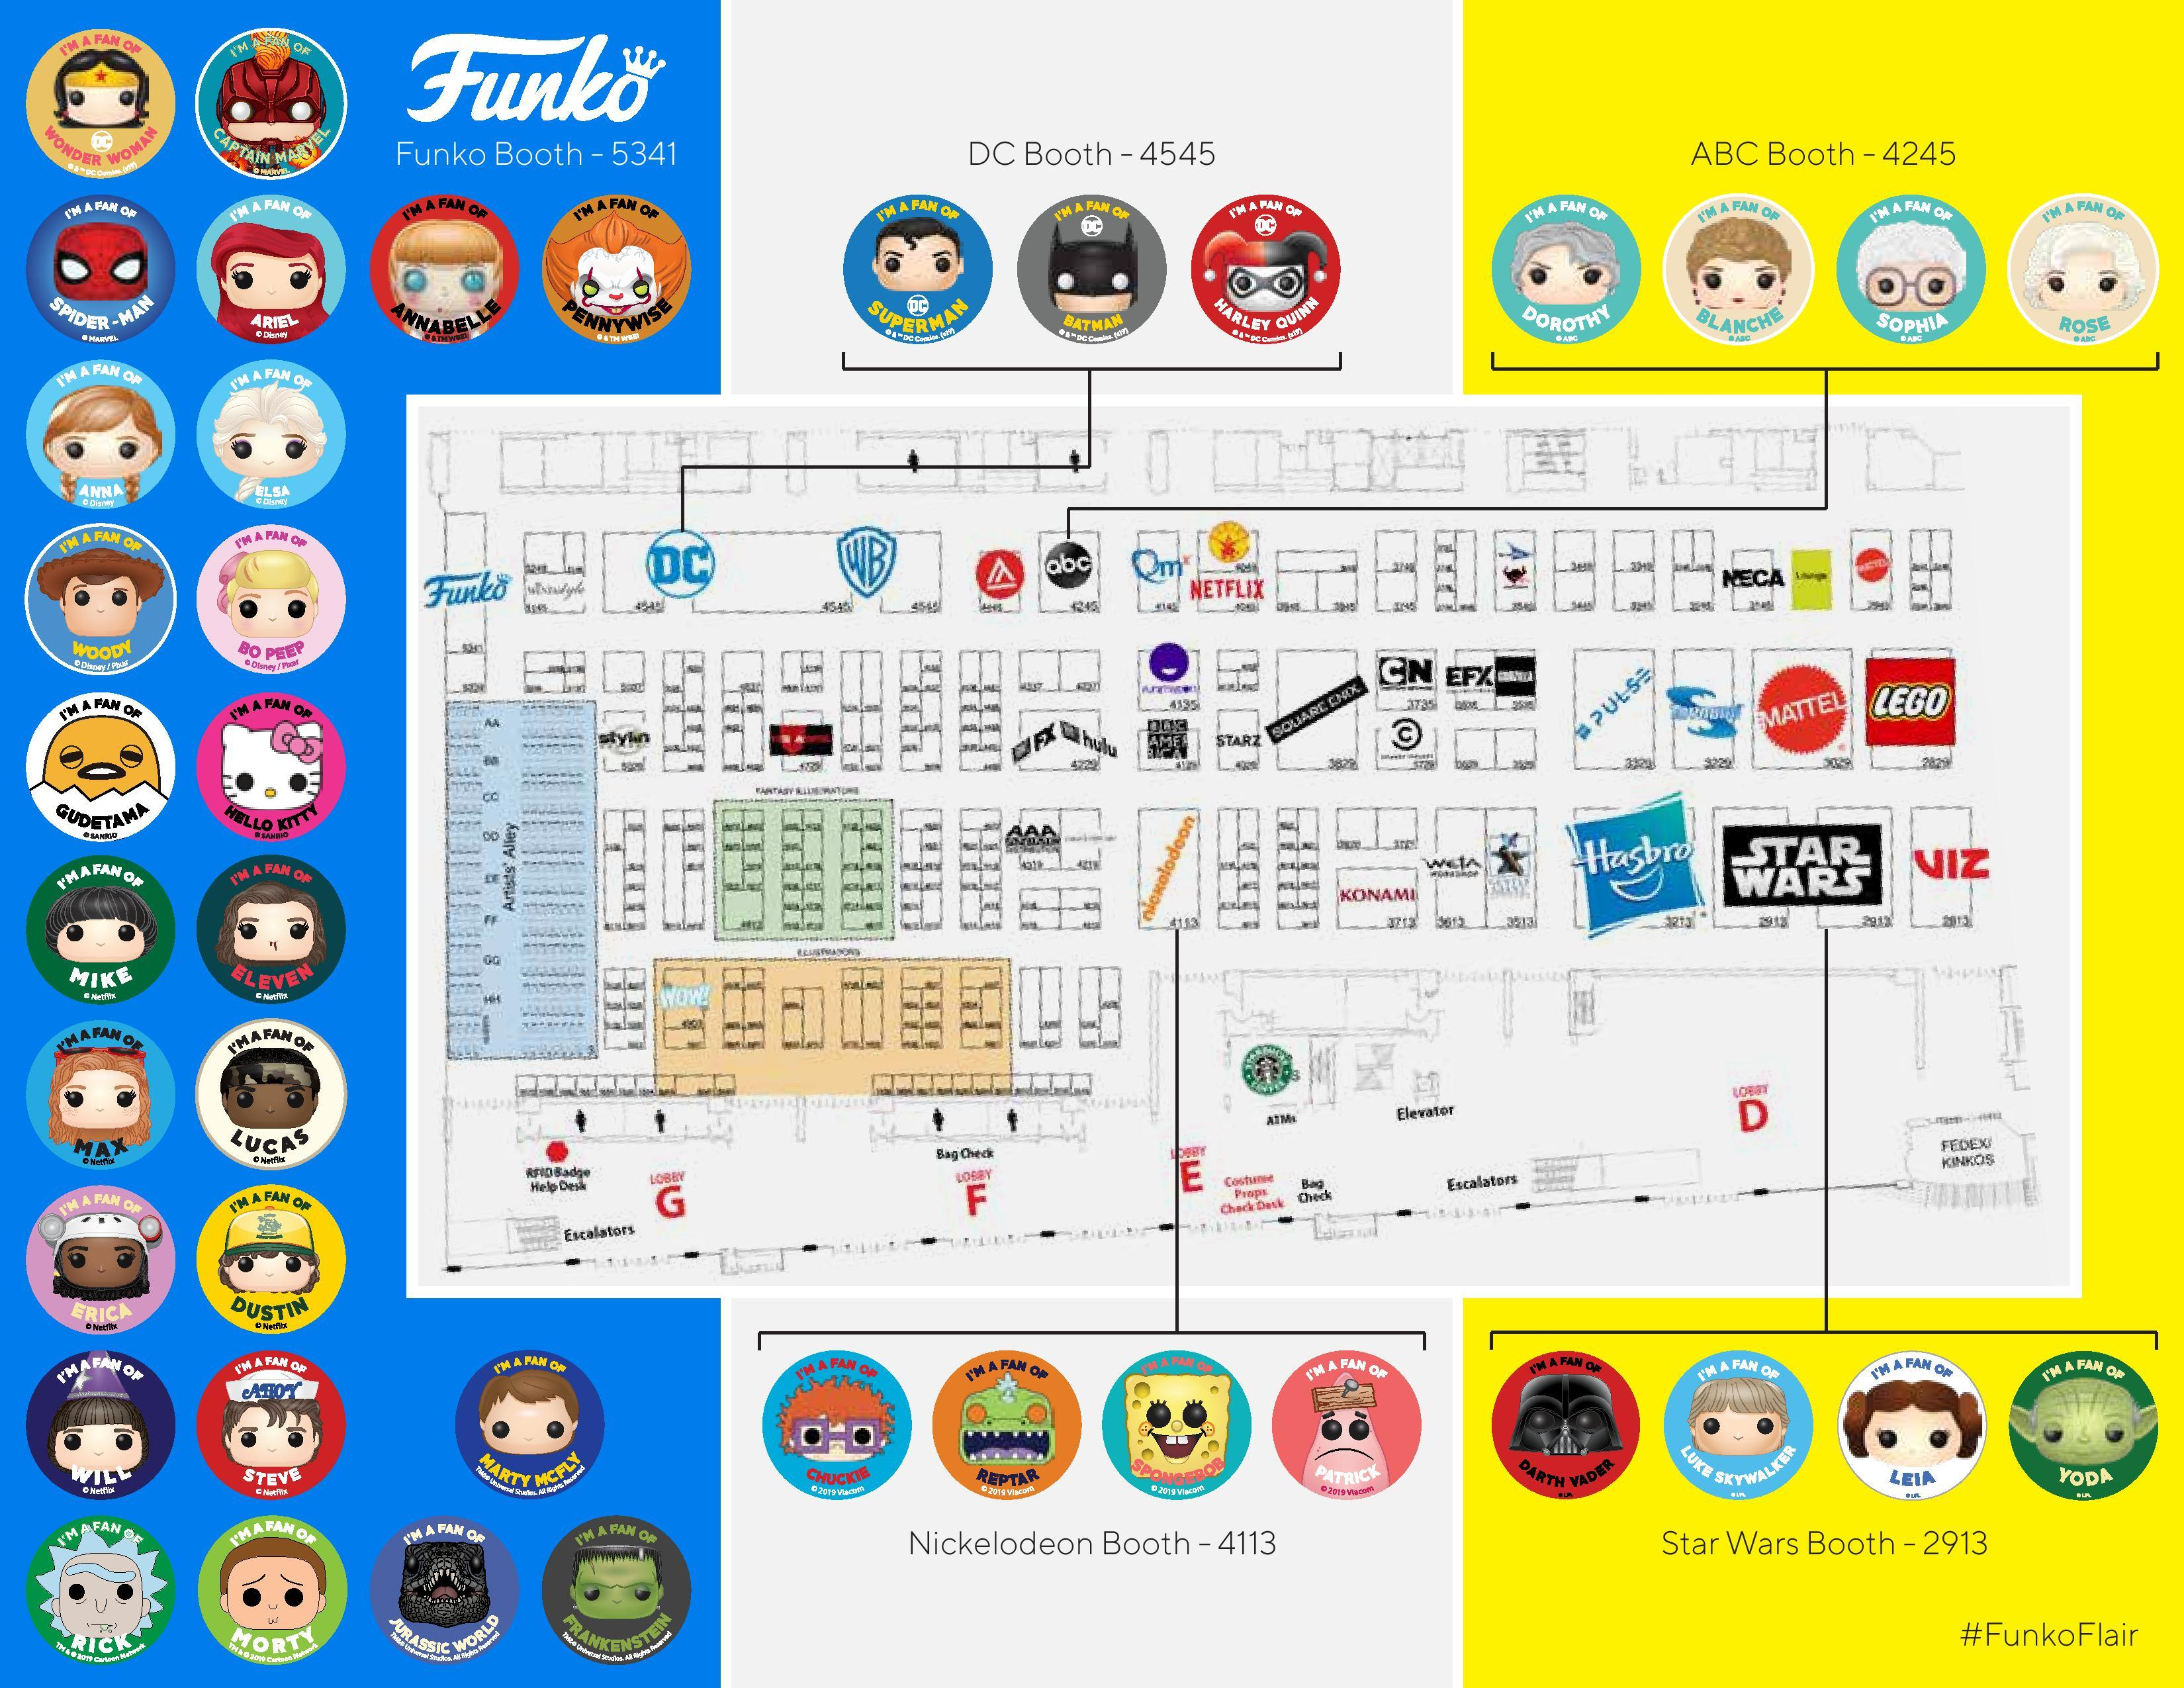 SDCC 2019: Everything You Need To Know!   Funko on halloween map, otakon map, pax map, thundercats map, transformers map, convention map, sandman map, the dark knight map, tron map, thanksgiving map, tmnt map, black widow map, avengers map, spiderman map,